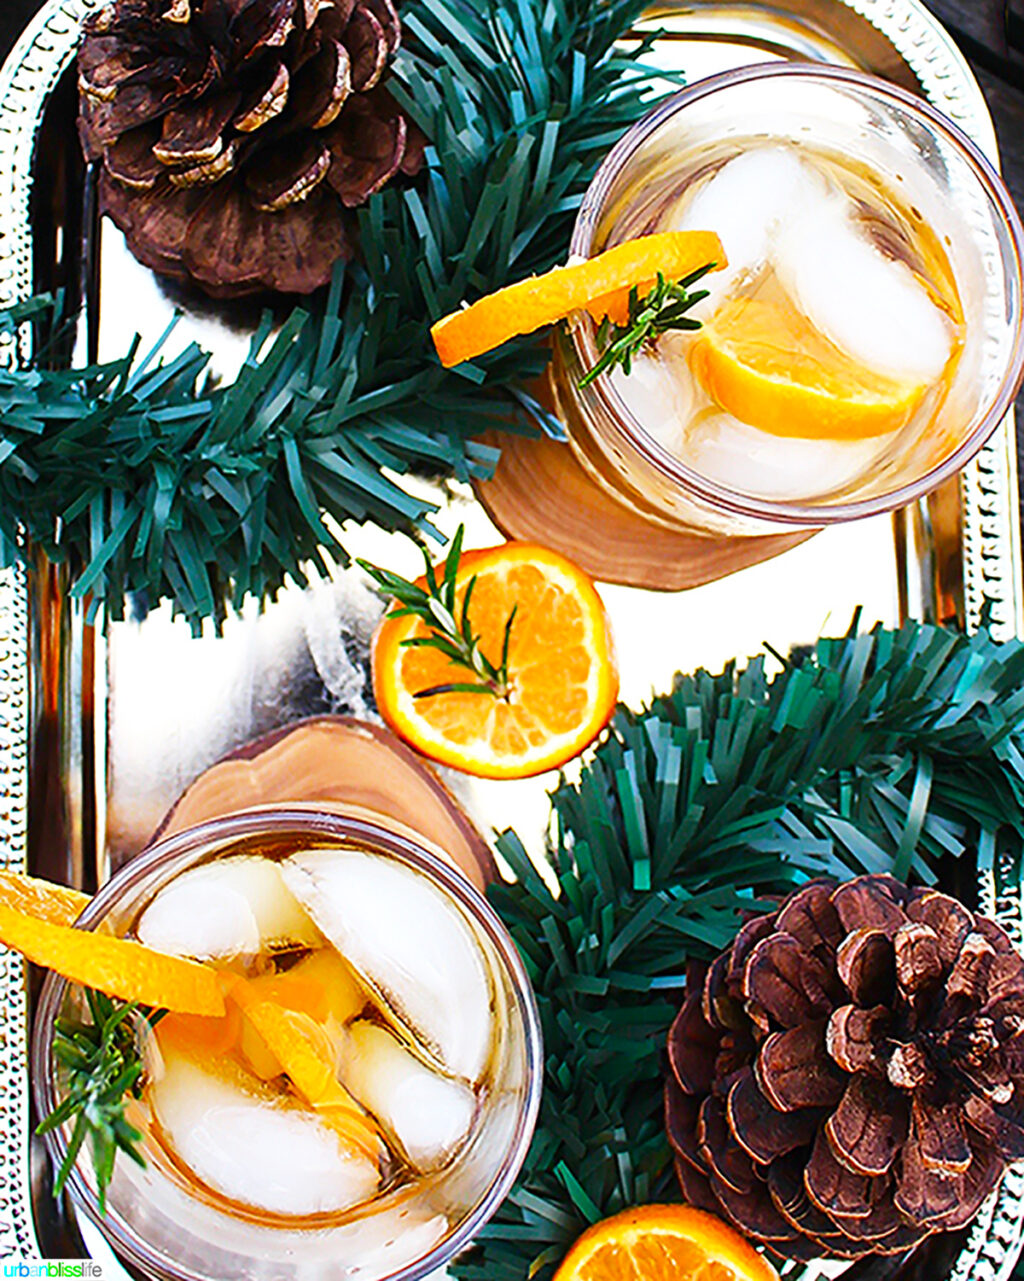 two glasses of rosemary citrus old fashioned cocktails with decorations